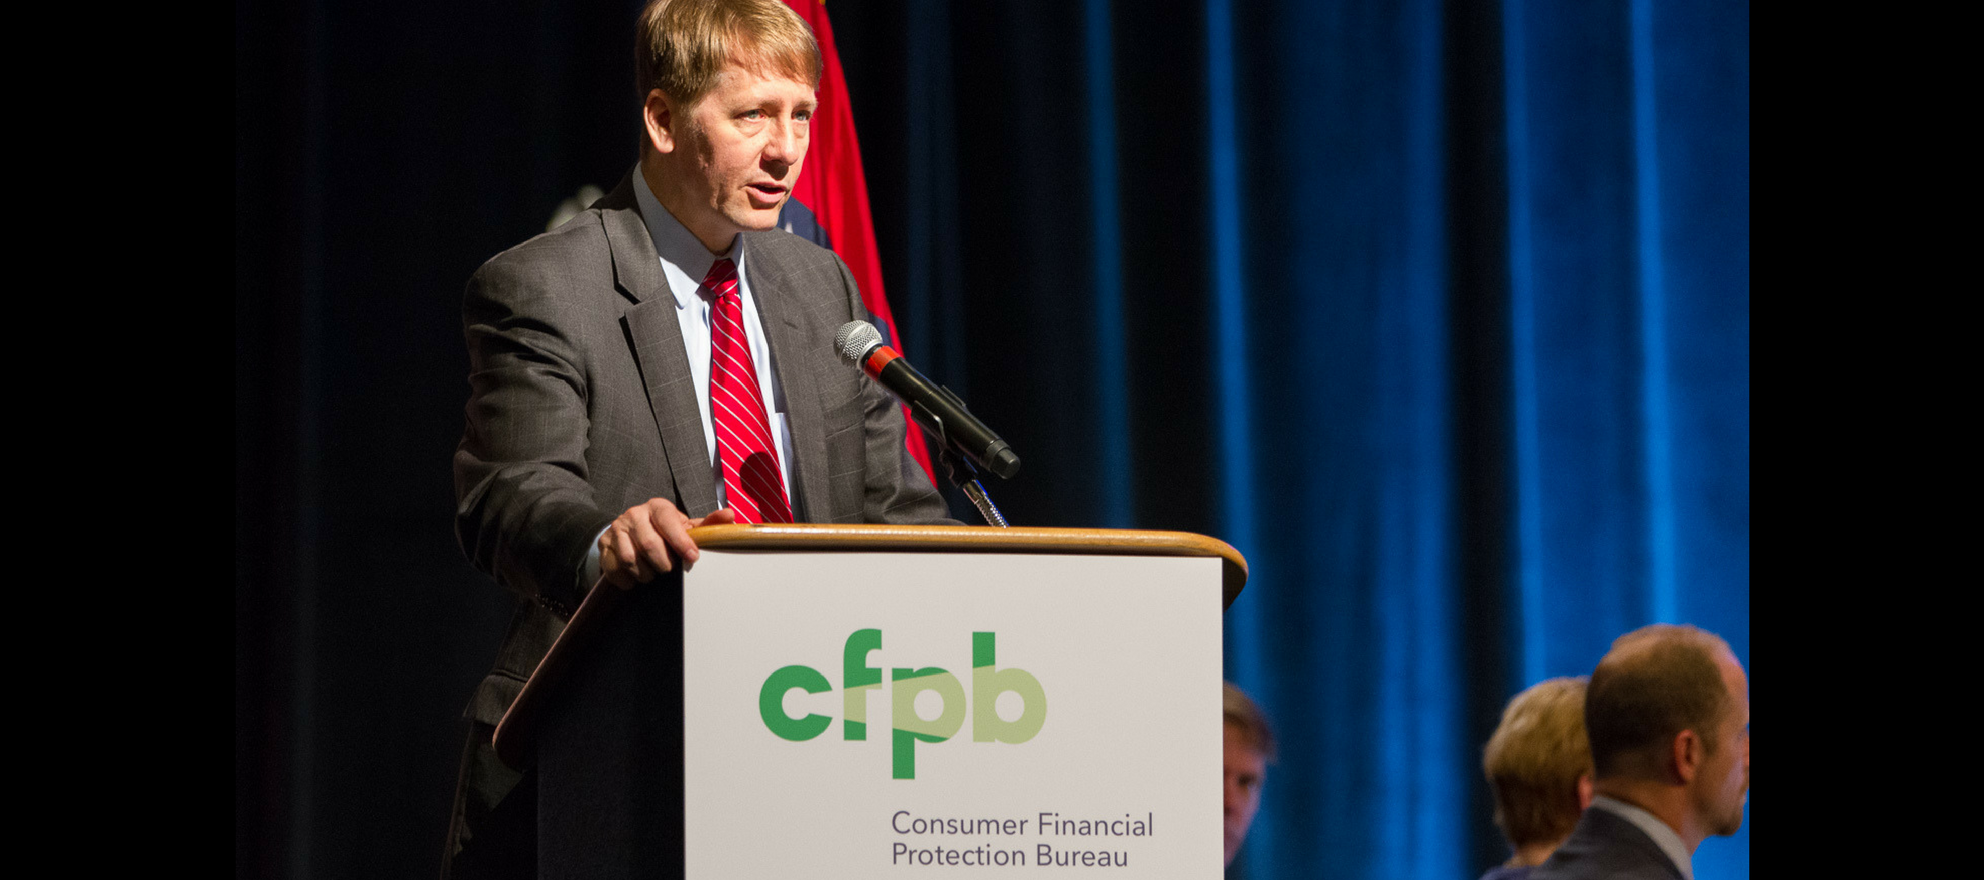 CFPB director Richard Cordray resigns